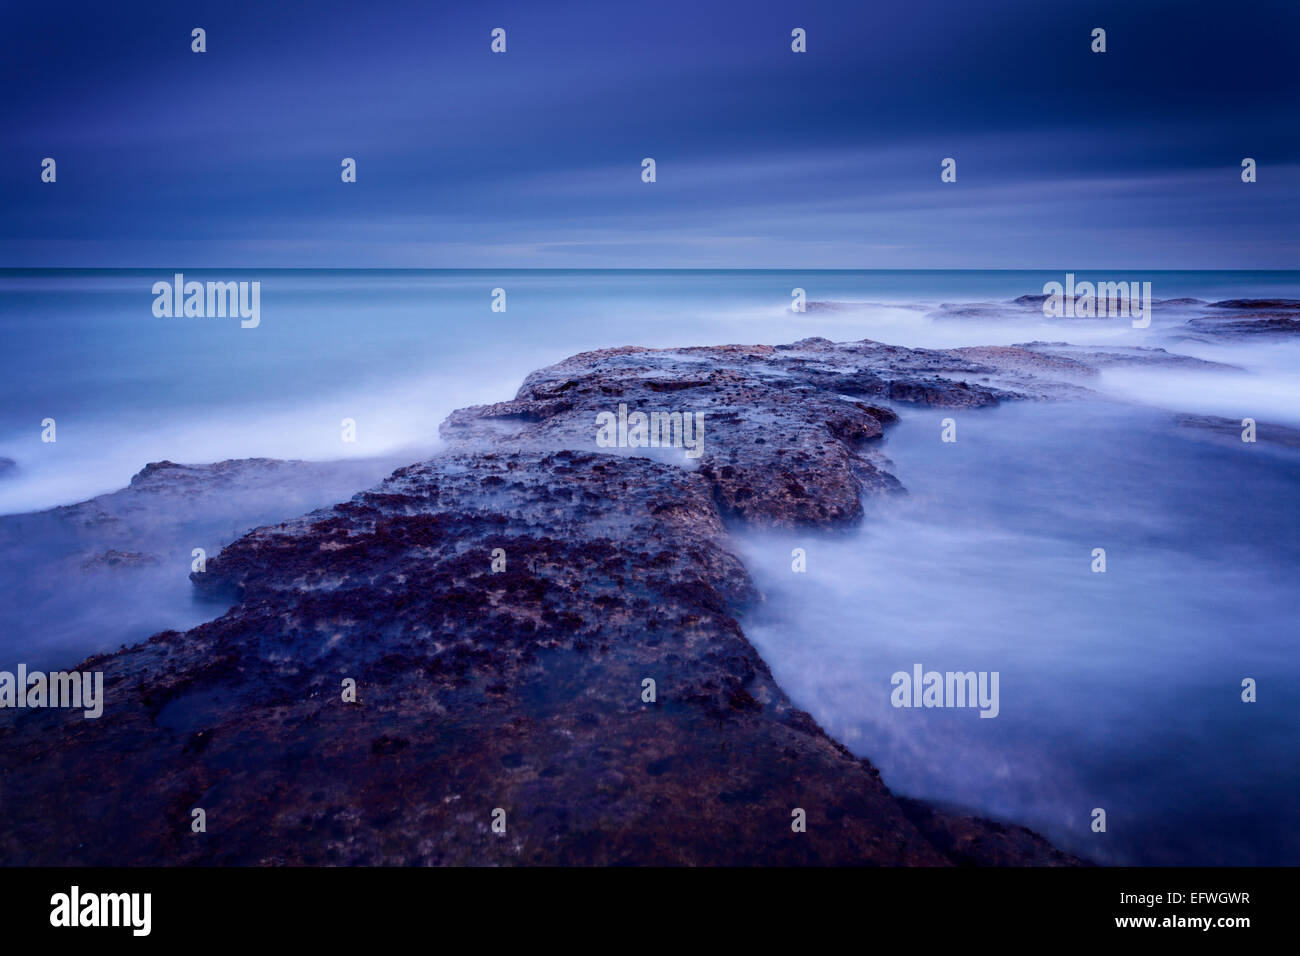 Large waves pounding the reef at Thorntonloch during the blue hour before sunrise. - Stock Image